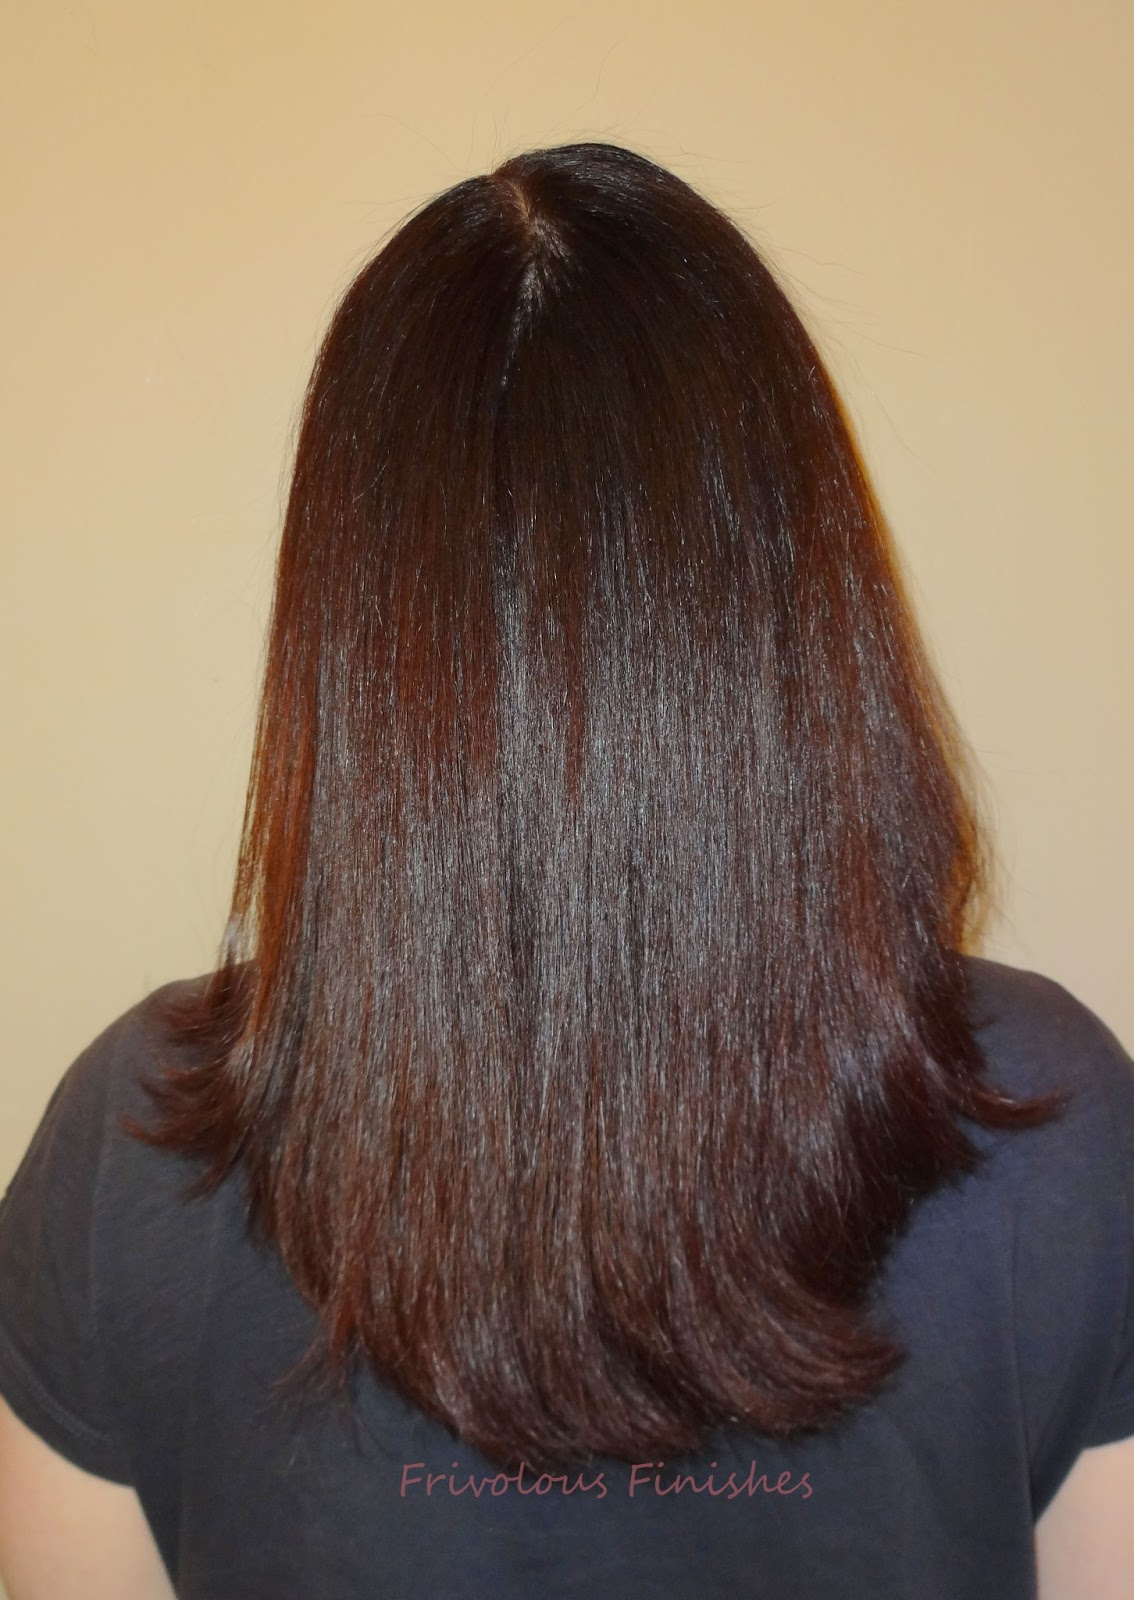 Frivolous Finishes Esalon Used And Reviewed